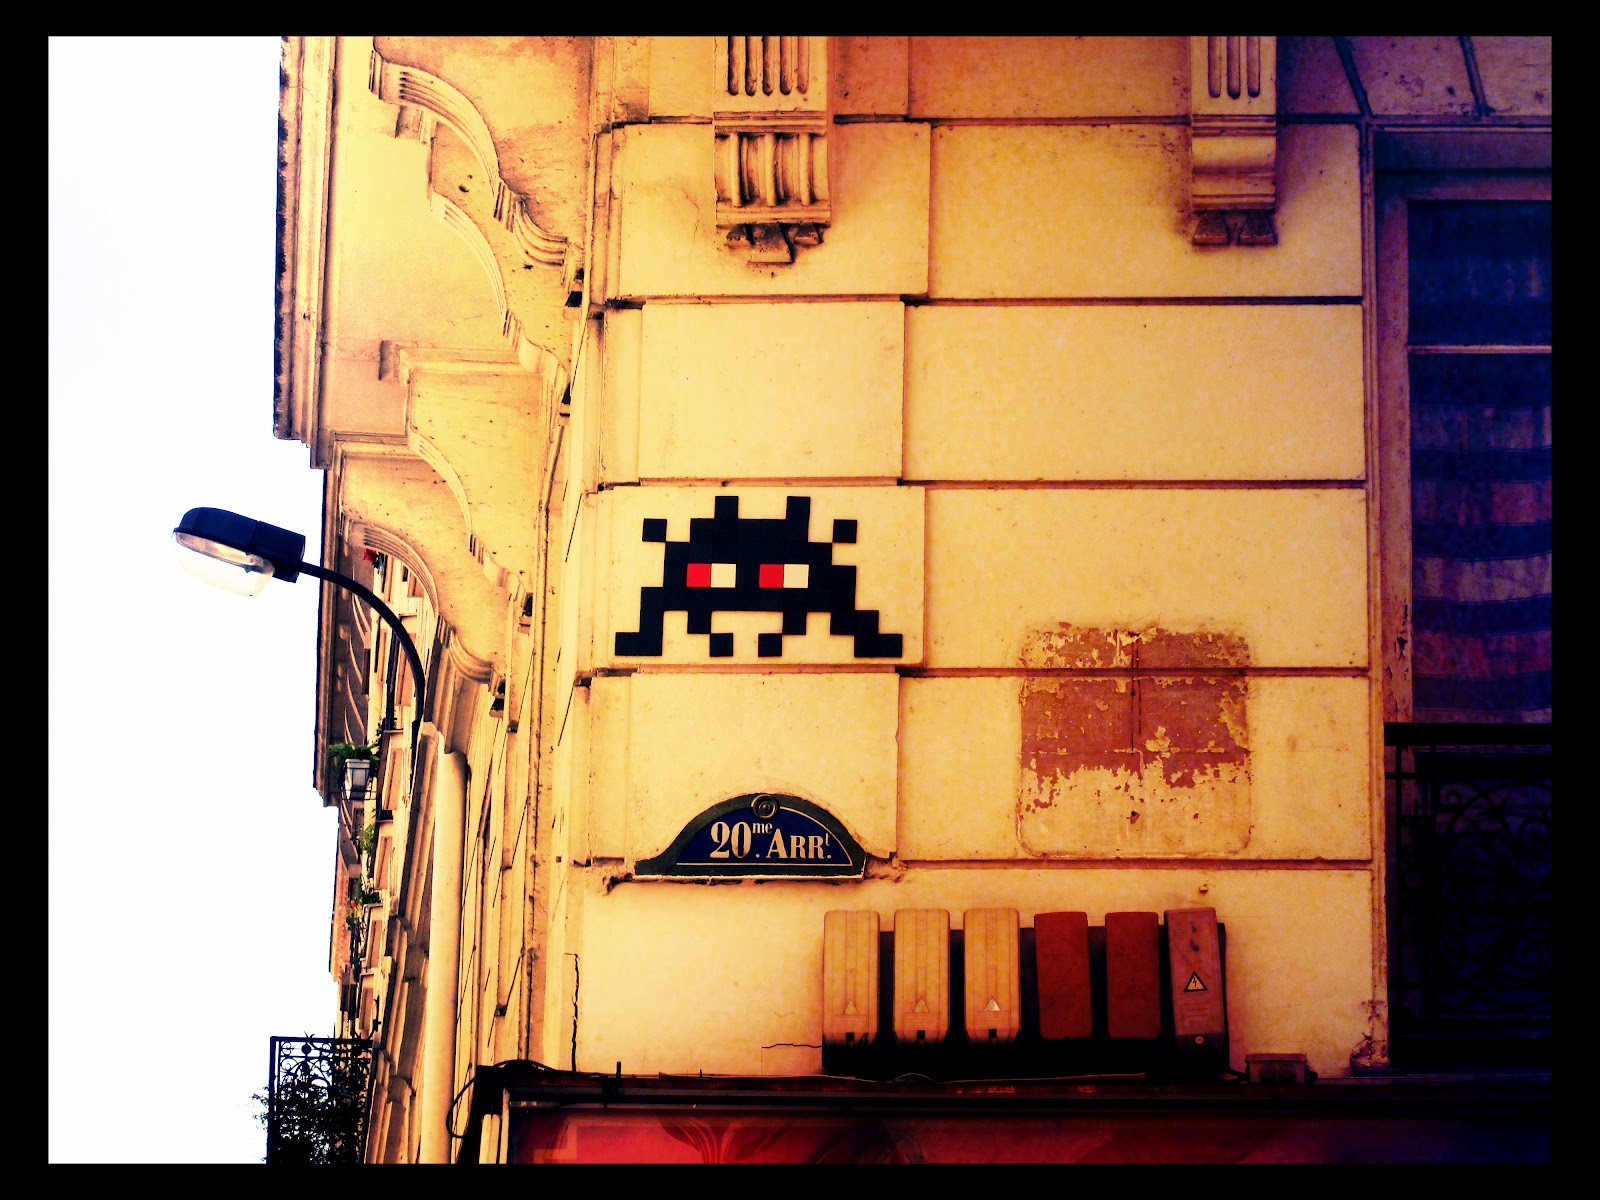 space invaders wikipedia